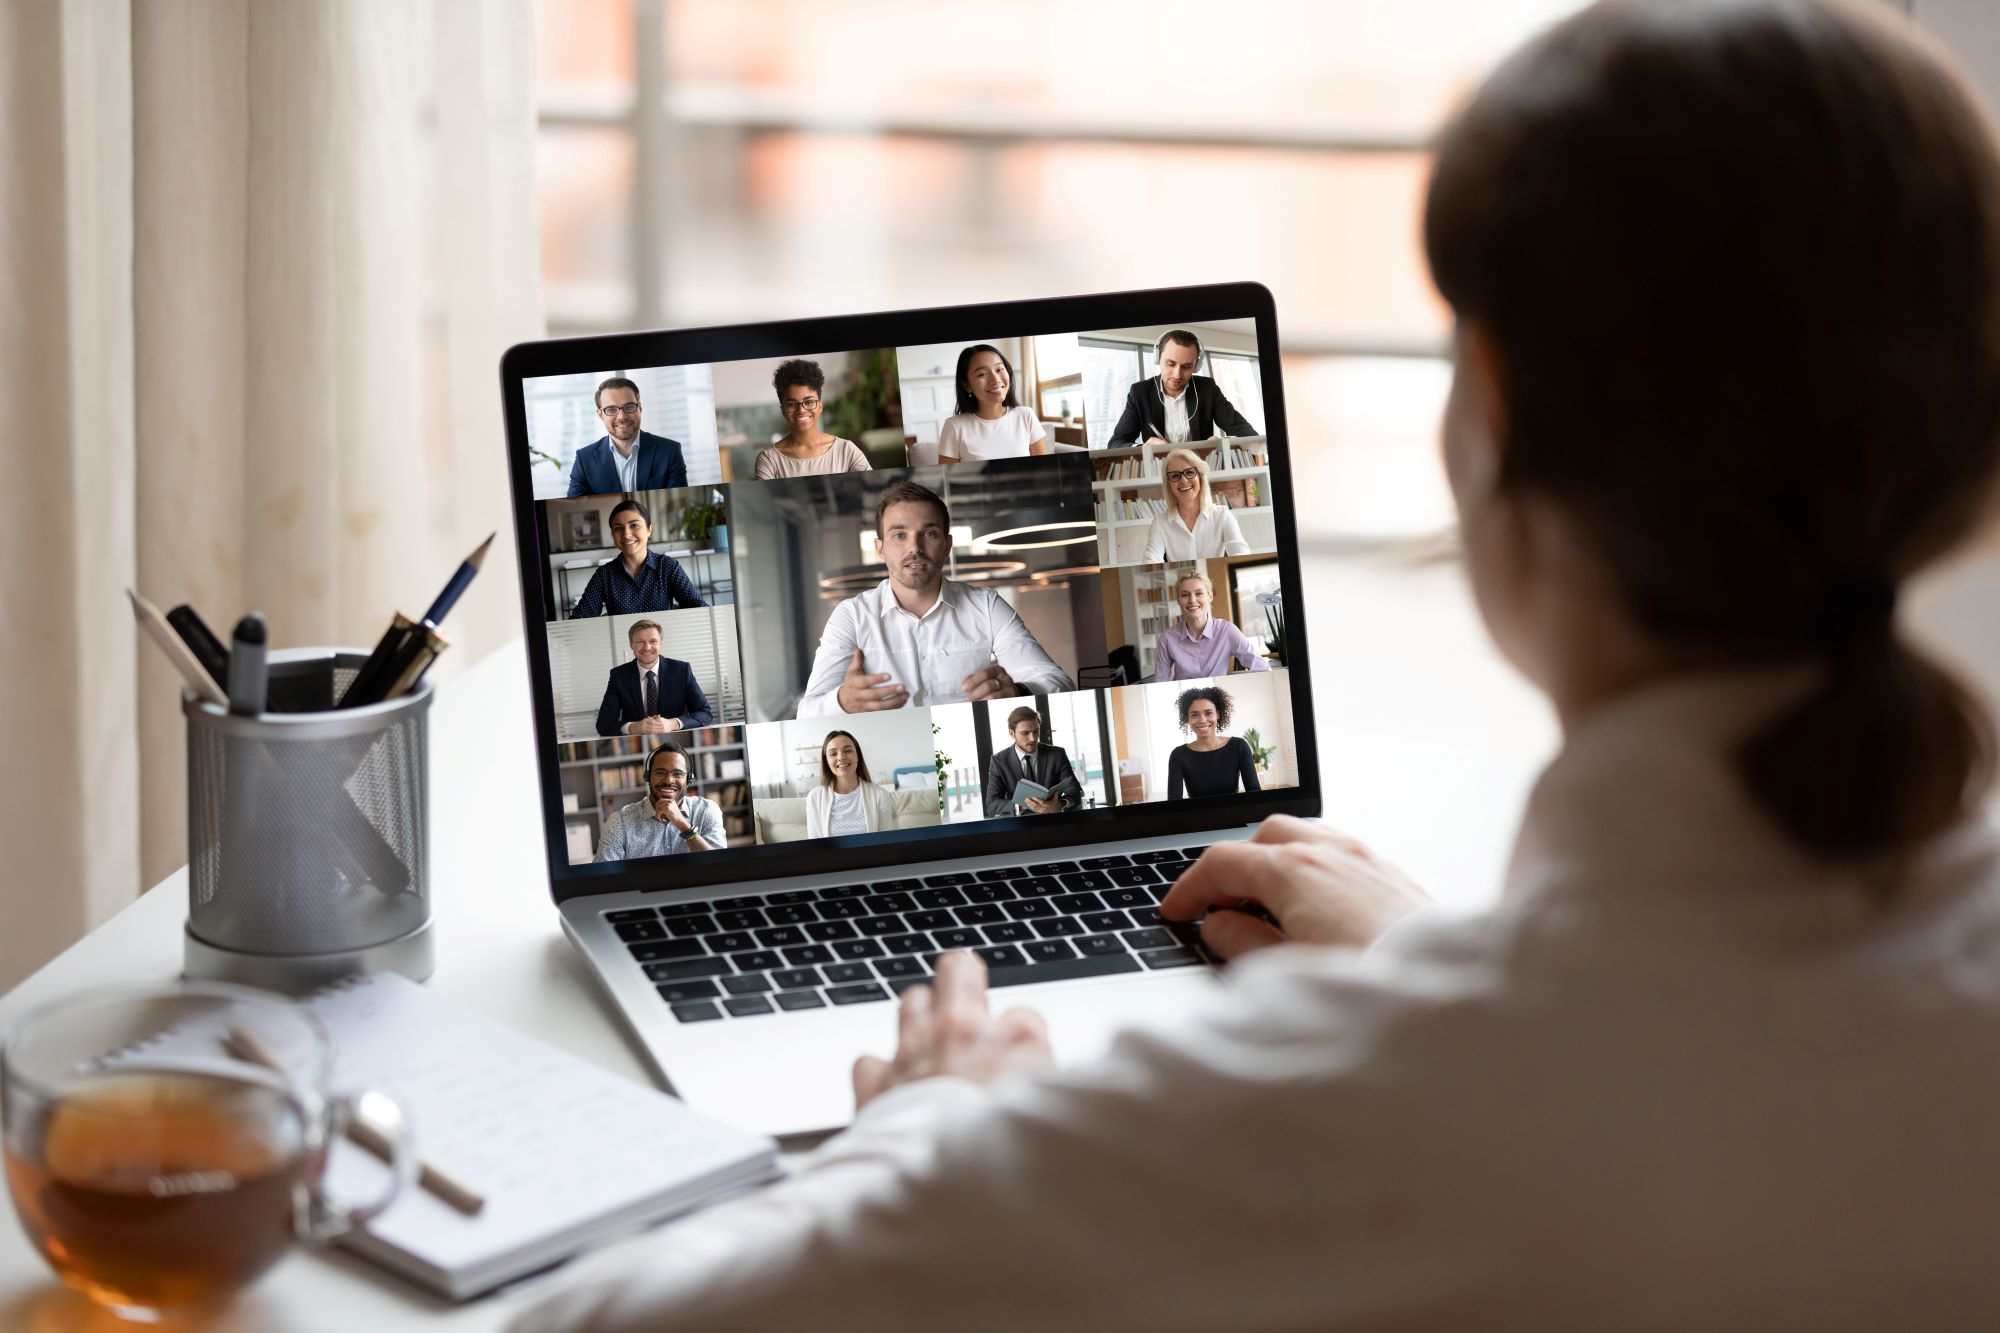 Photo of business woman seated at desk, looking at laptop of various people during a virtual meeting